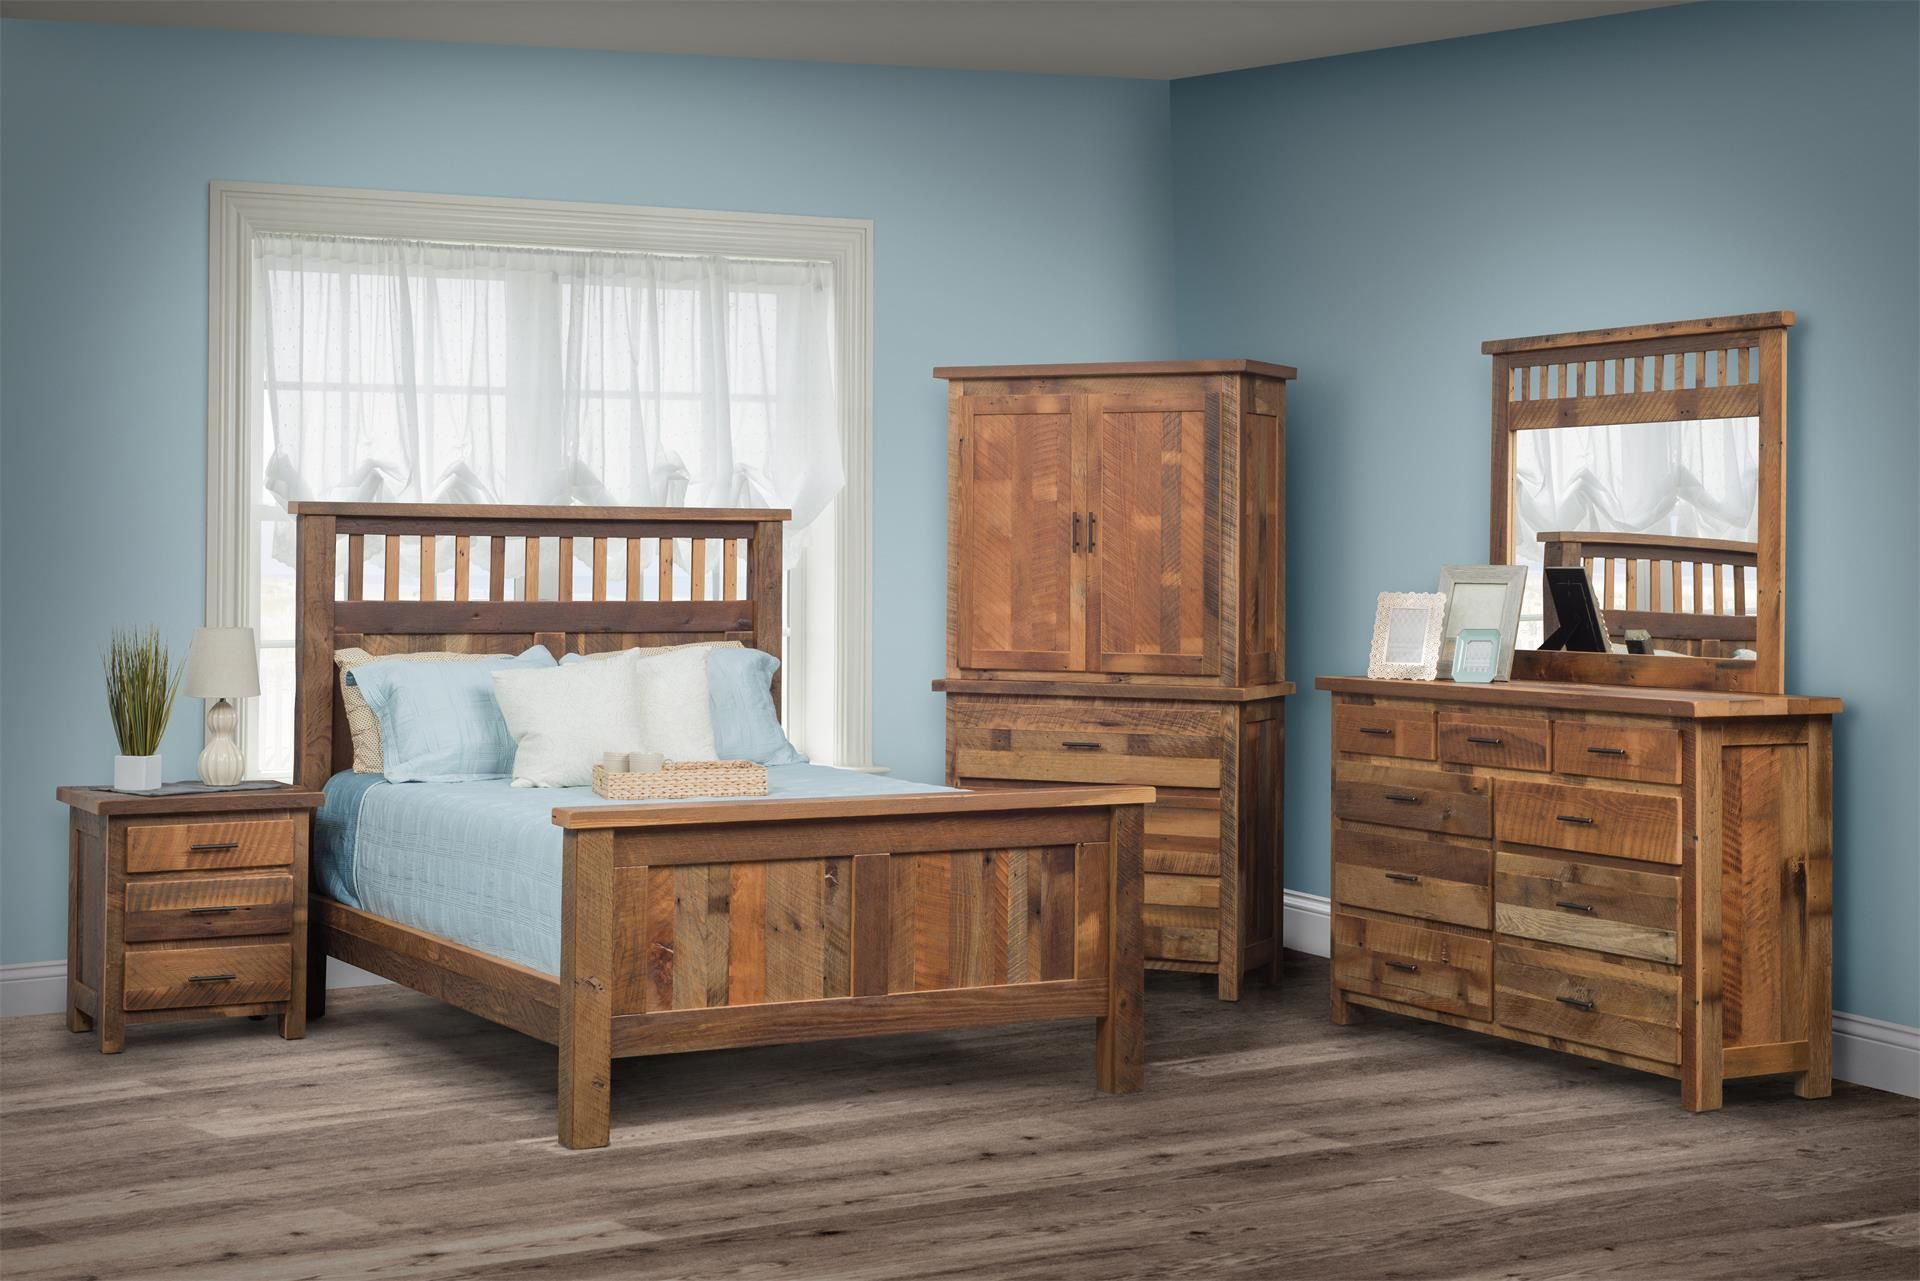 Bring some rustic, eco friendly style into your bedroom